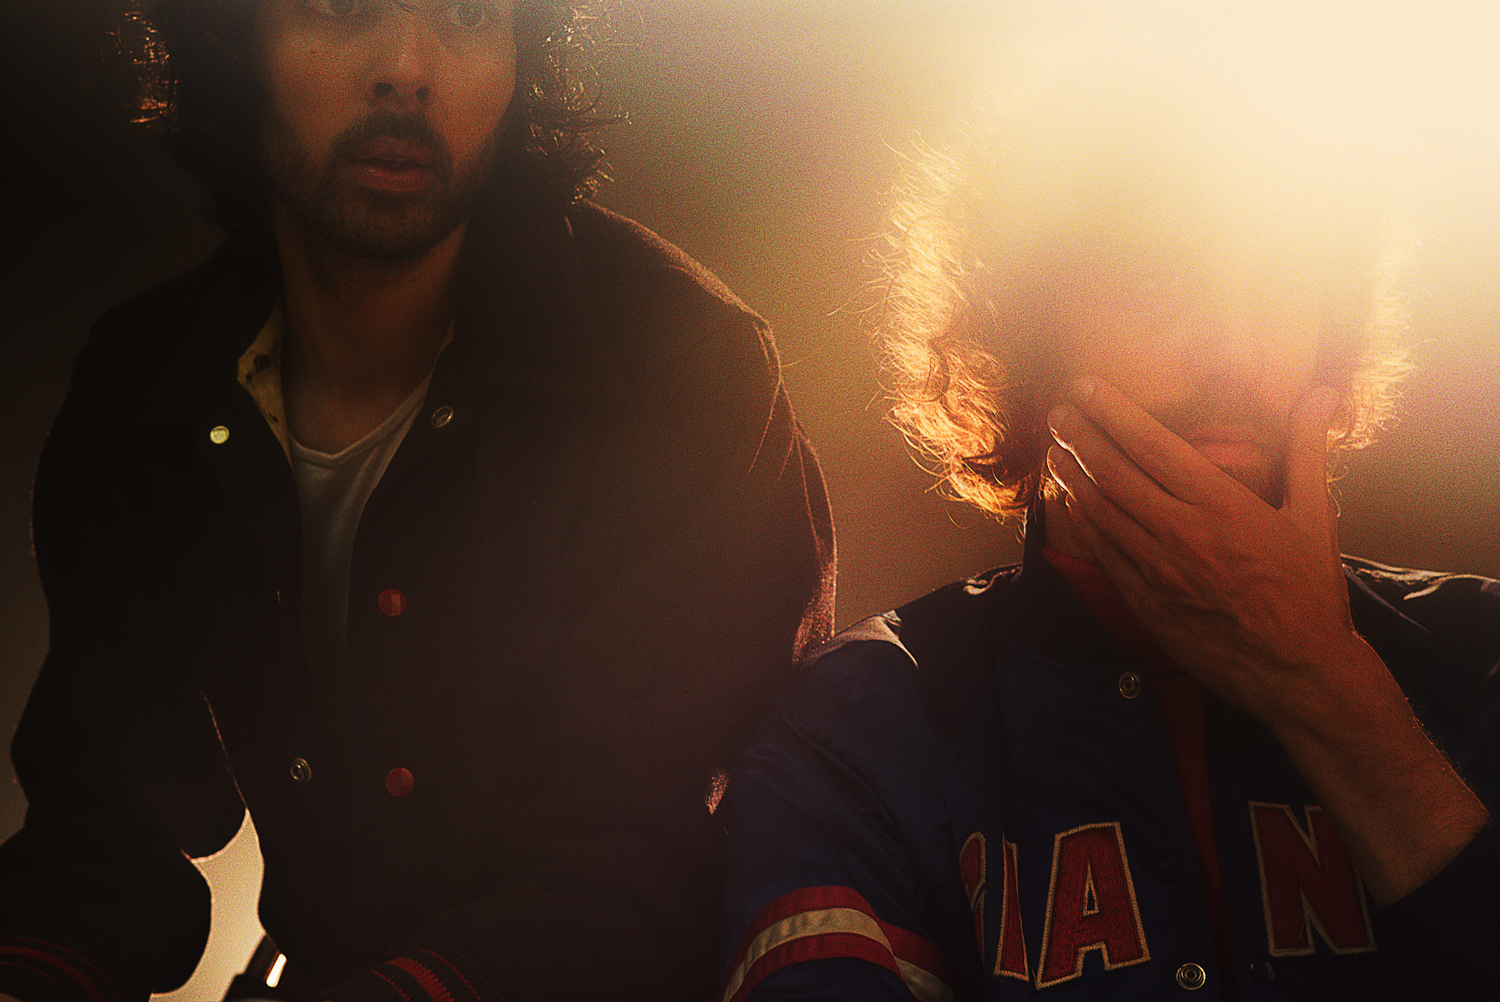 Justice - Love S.O.S. - WWW | SOTD MUSIKVIDEO PREMIERE